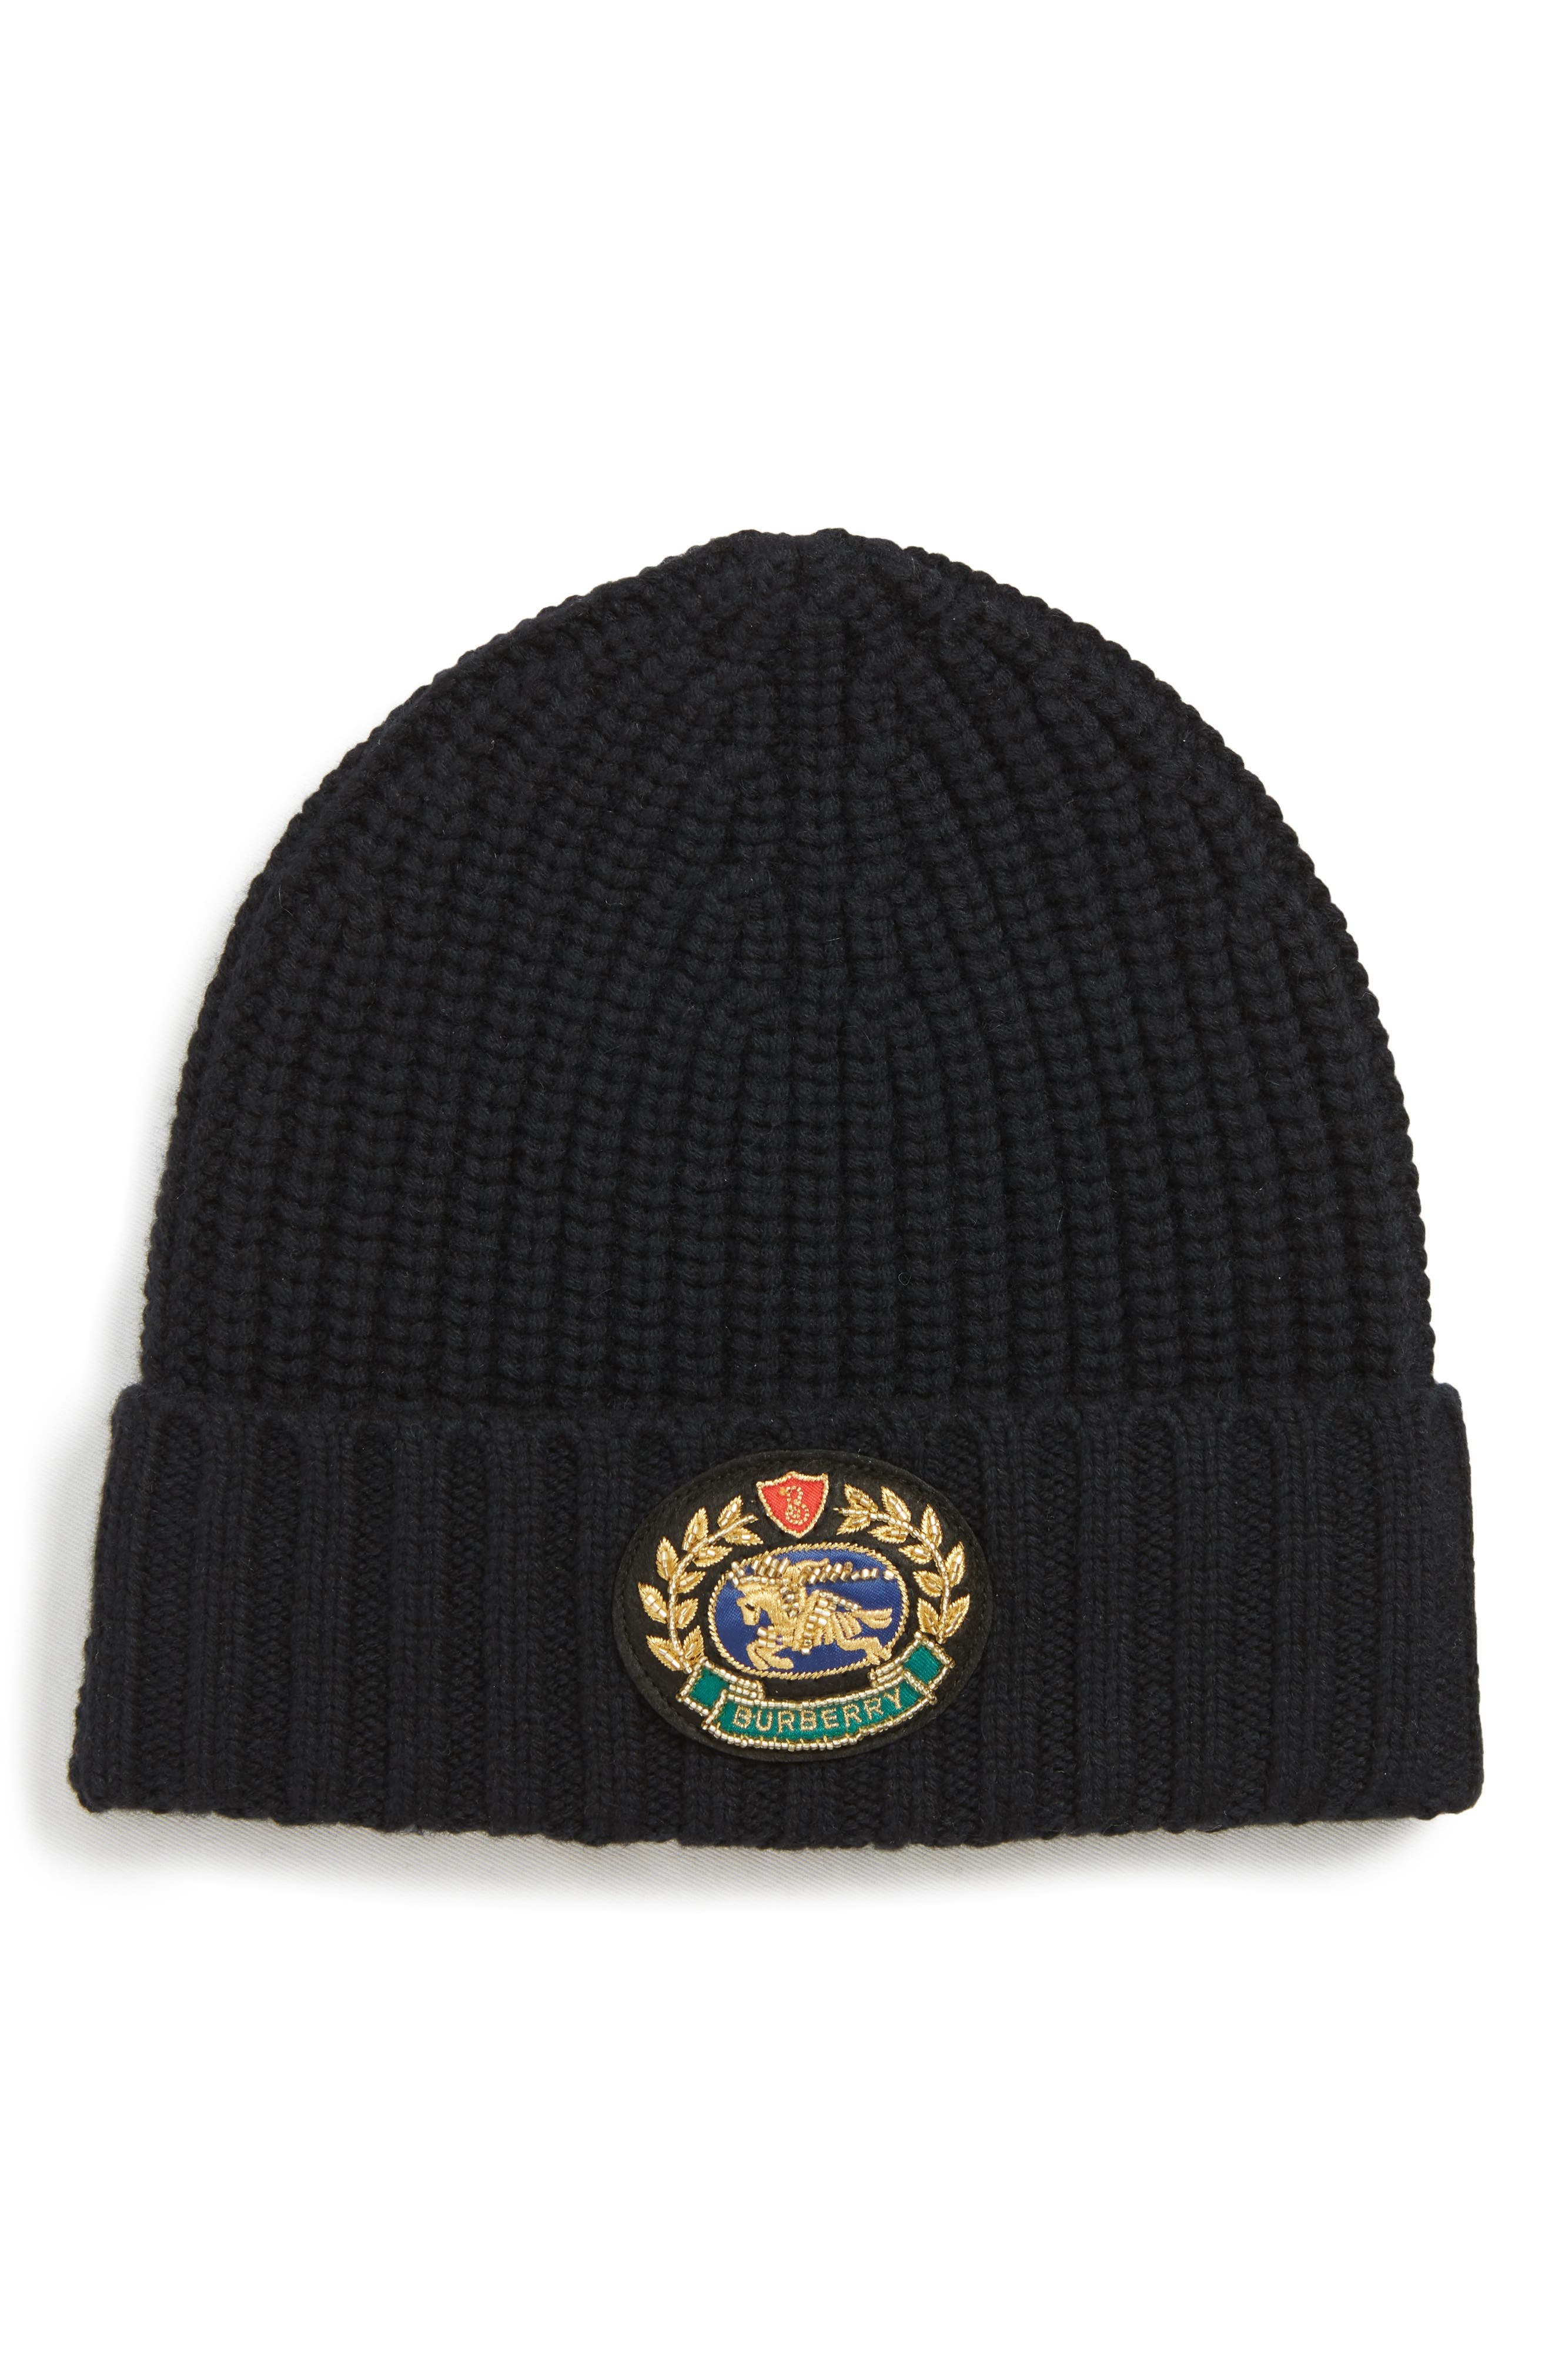 BURBERRY Embroidered Crest Wool & Cashmere Beanie, Main, color, BLACK